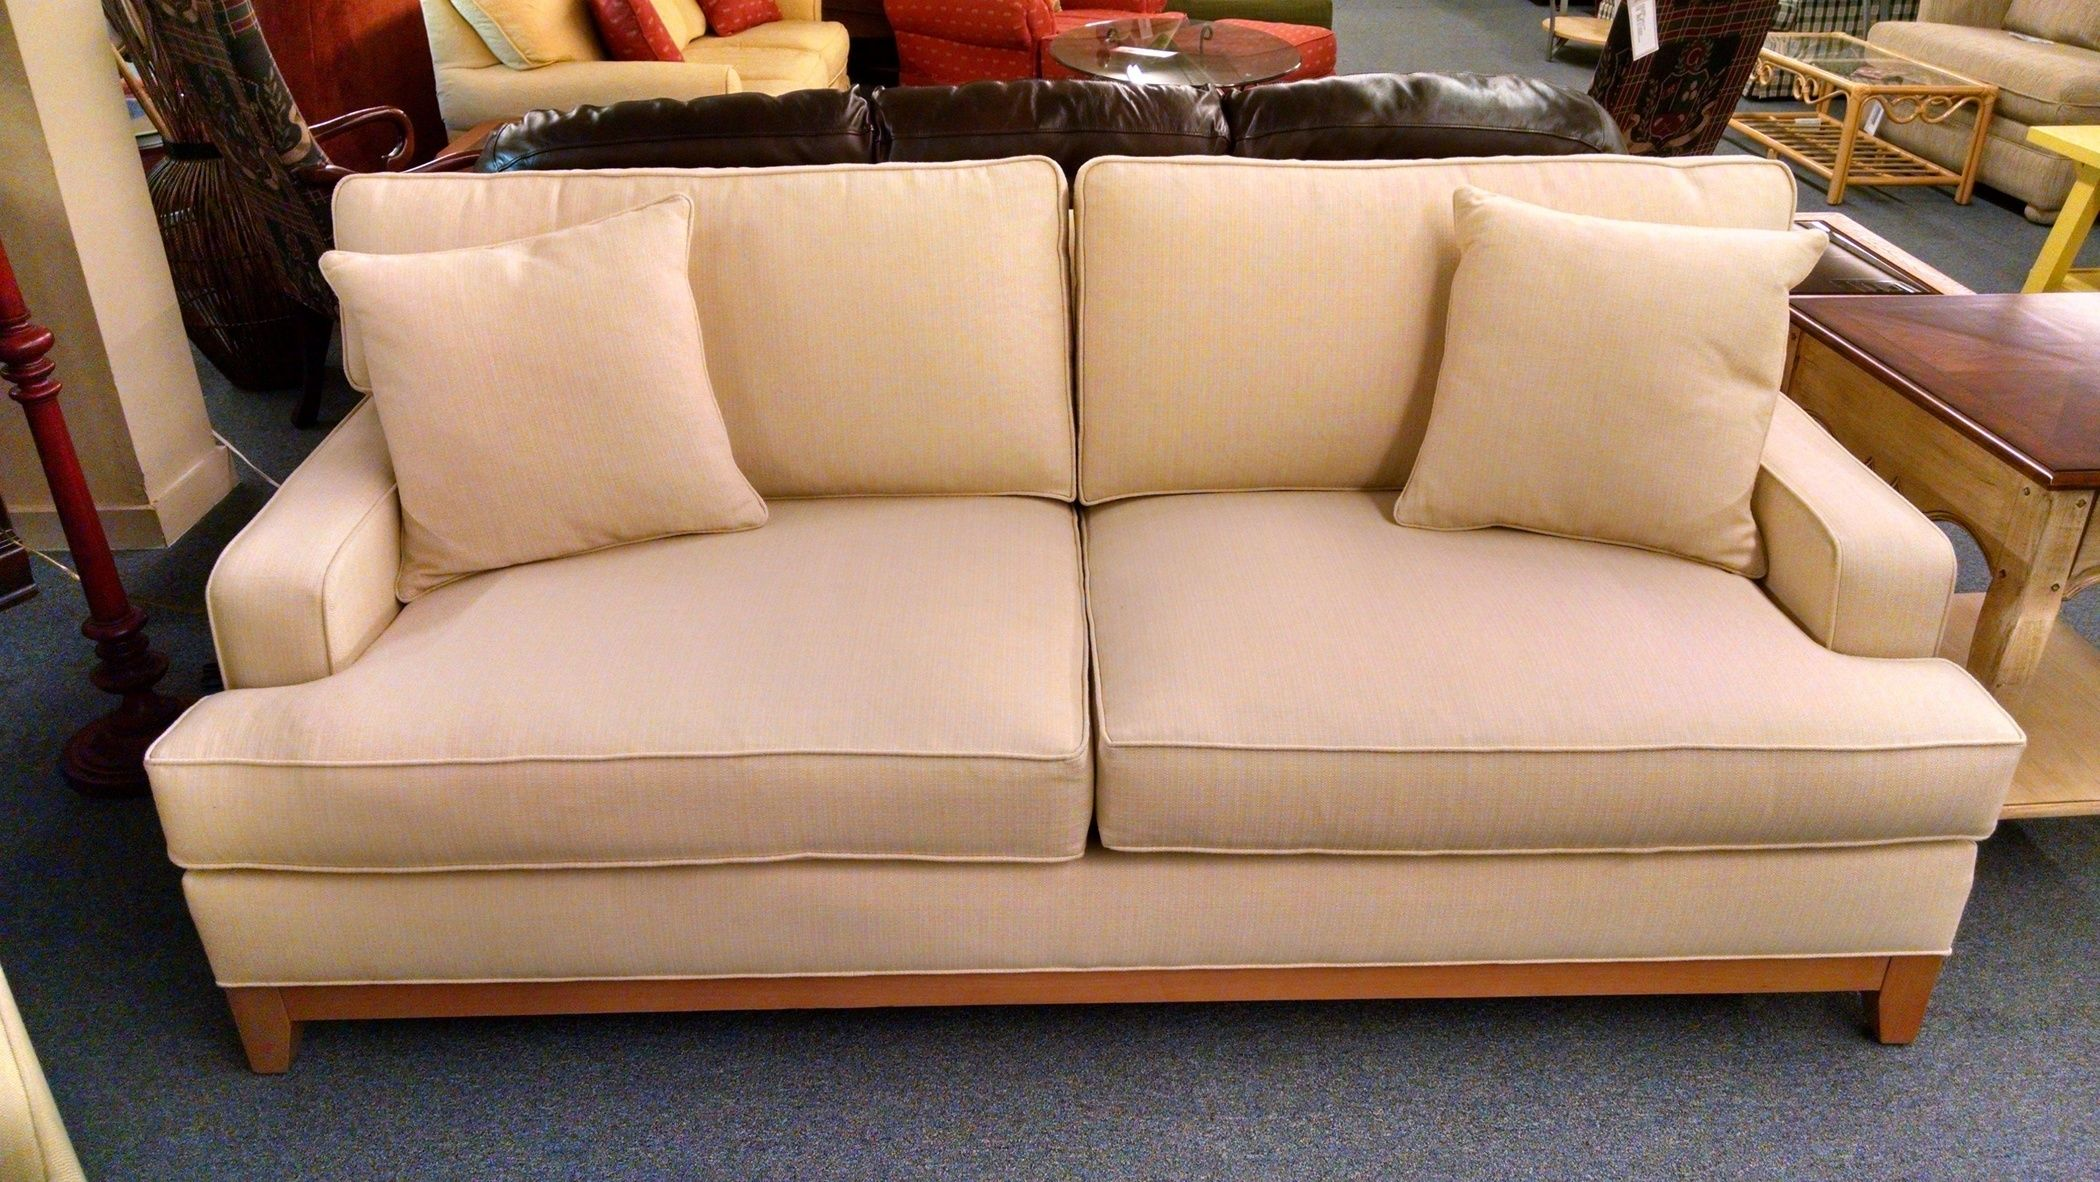 Ethan Allen Sofas Lovable Ethan Allen Sleeper Sofas With Ethan Allen Sofa Lp Designs Large